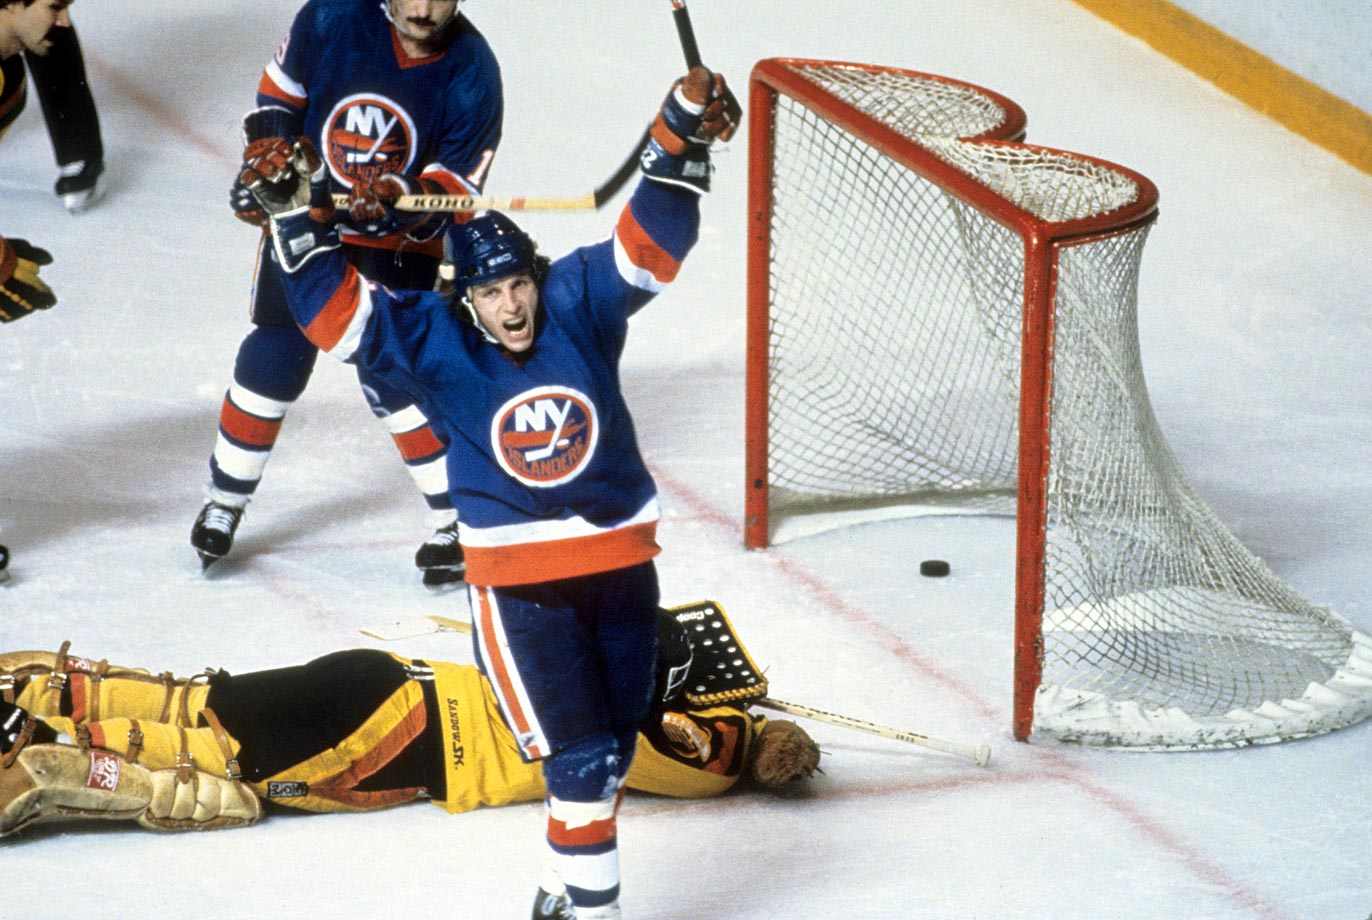 The Hall of Fame sniper, who racked up 64 goals during the regular season and 17 more in the playoffs, terrorized the Canucks with seven in the Islanders' sweep of the series. Here, the 1982 playoff MVP exults after beating Vancouver goalie Richard Brodeur for one of his two power play tallies in the Isles' 3-1 win in Game 4 that made them the first U.S.-based team to win three consecutive Stanley Cups.